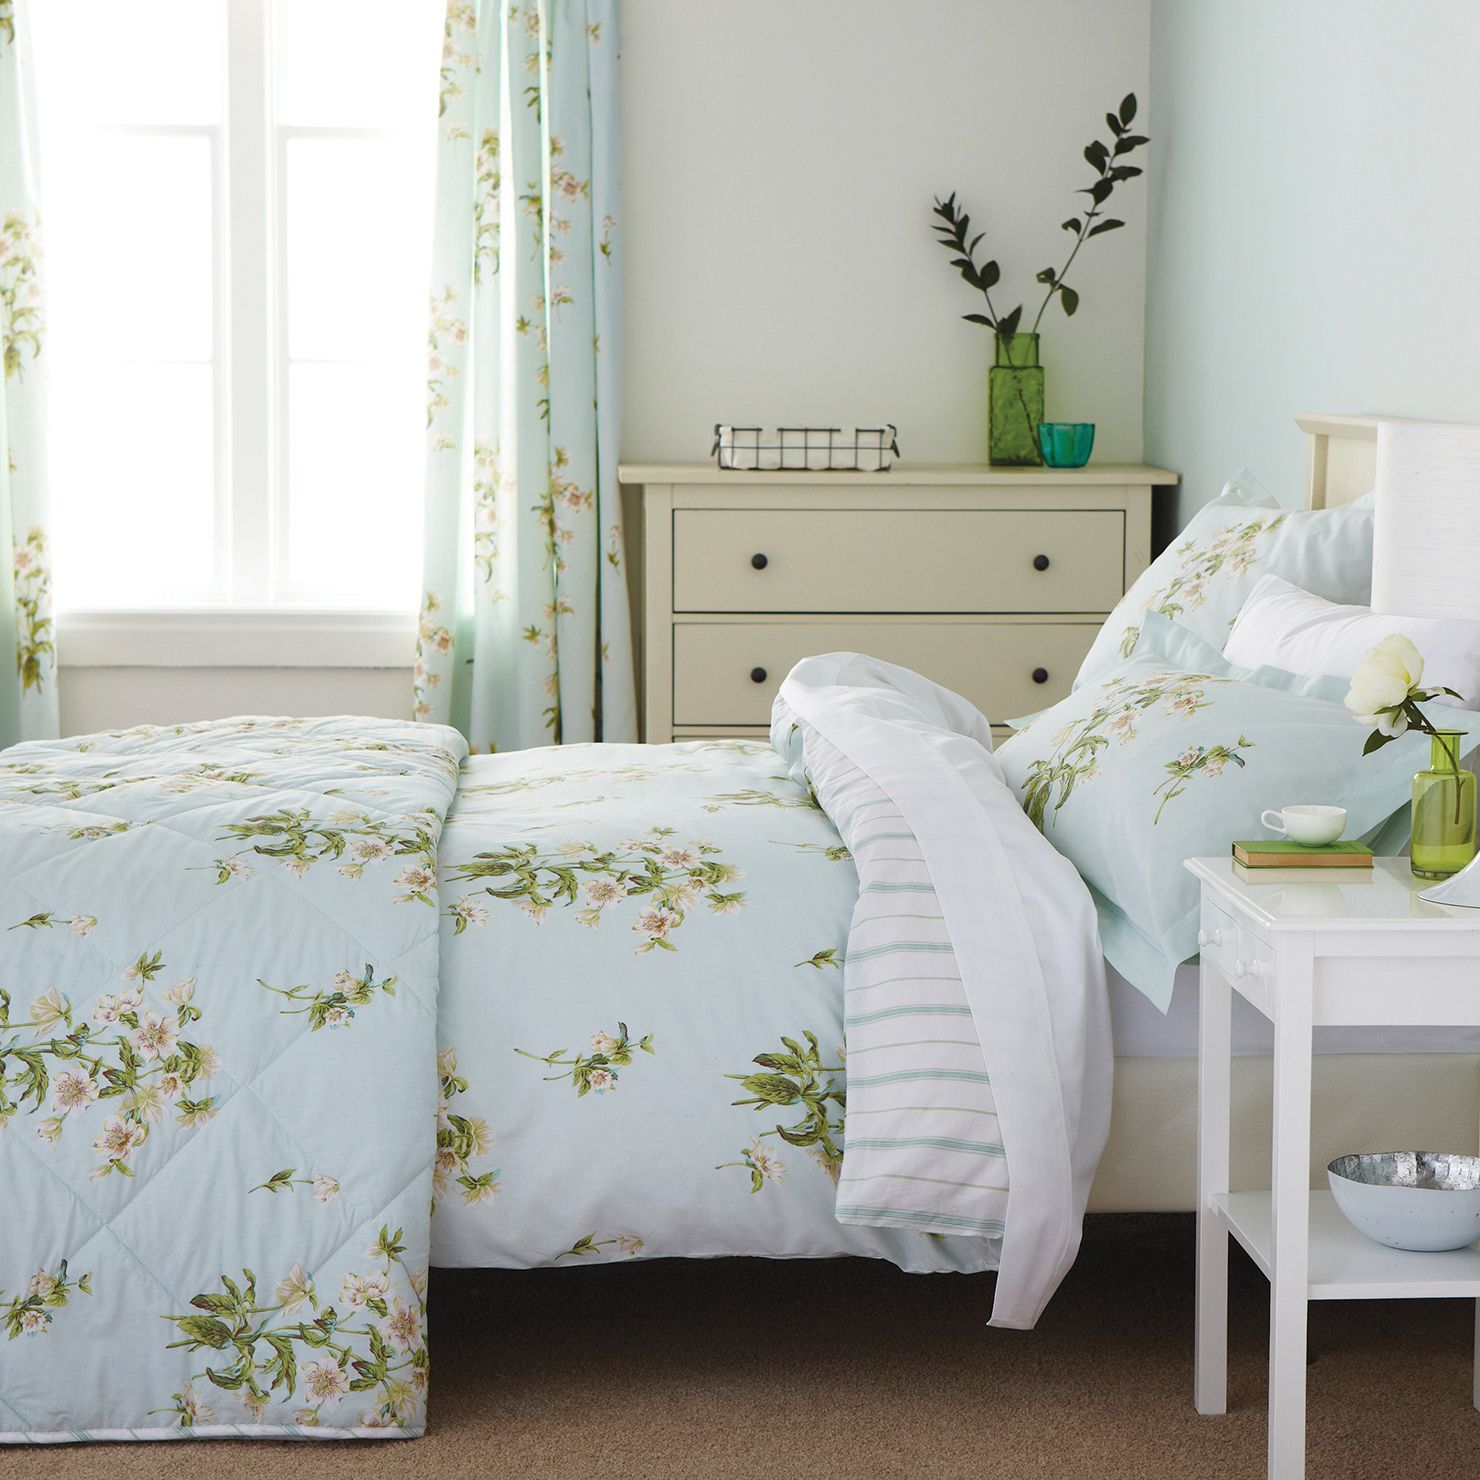 Sanderson Bed Linen Sanderson Hellebores Super King Duvet Cover Set,